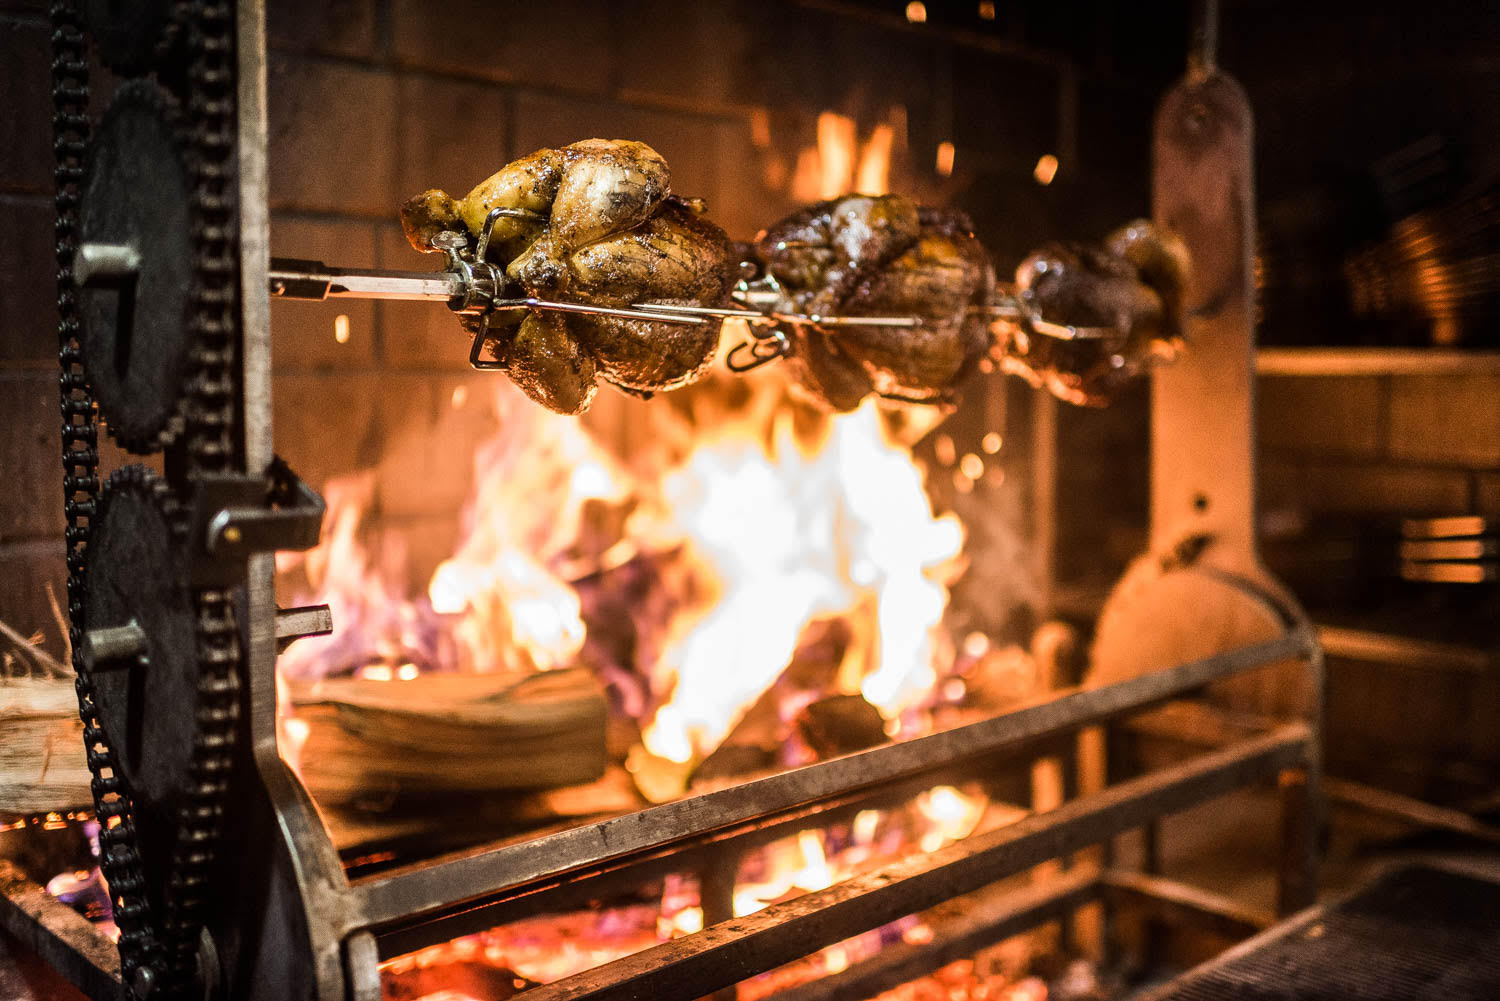 Honey-basted chicken cooking over the wood-fired hearth at A Rake's Progress.